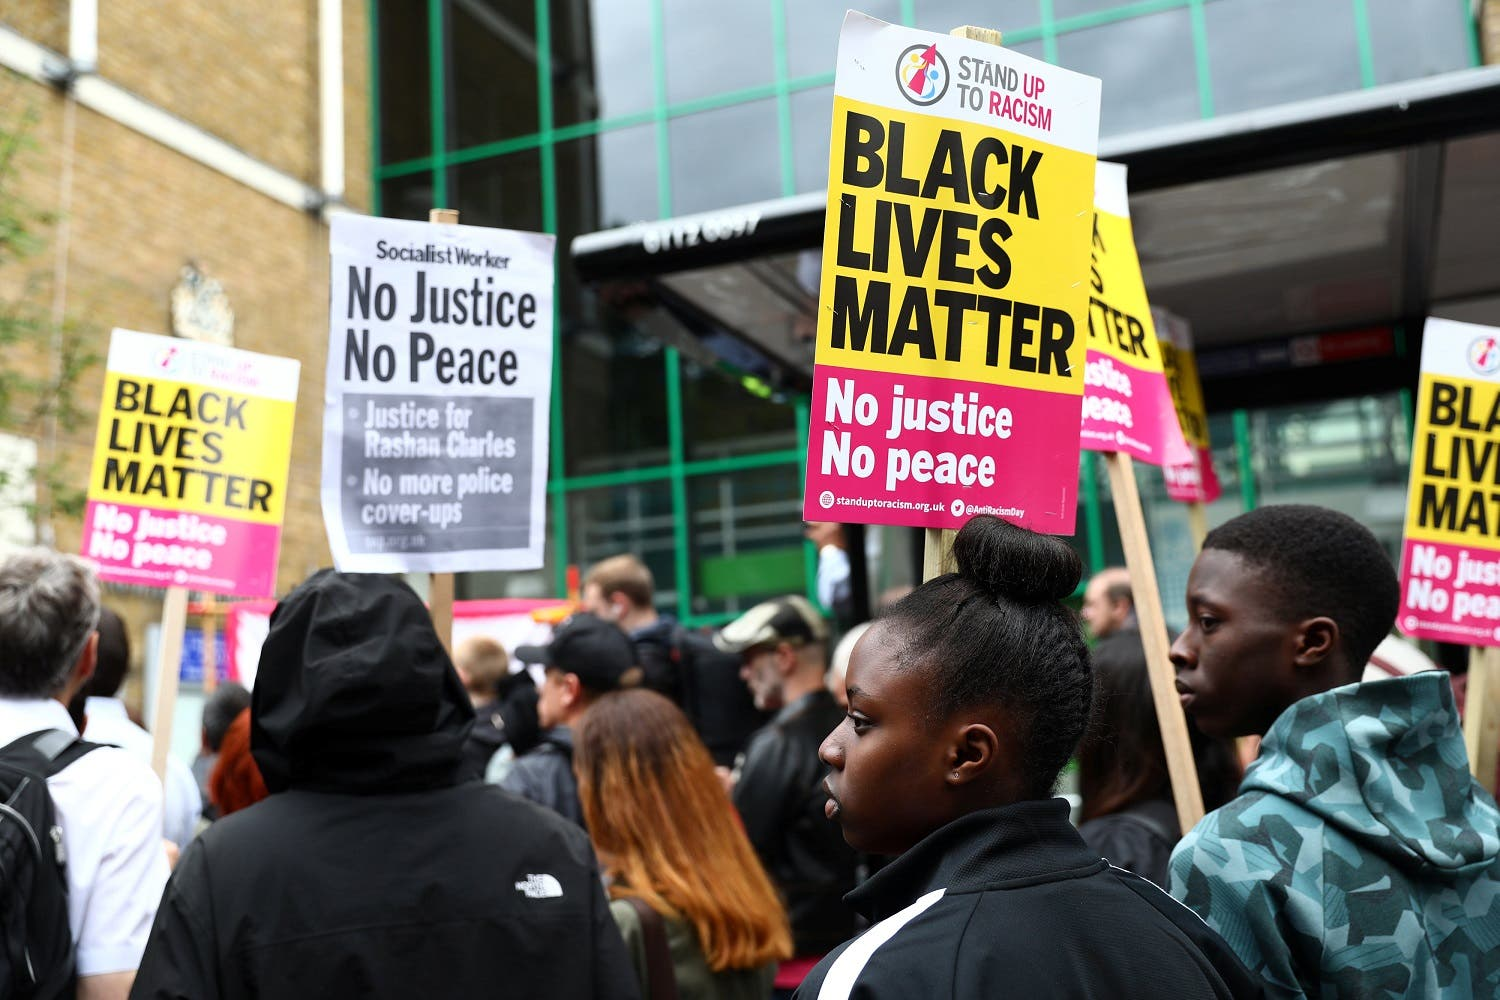 Demonstrators gather at a protest outside Stoke Newington police station over the death of Rashan Charles, London, Britain July 29, 2017. REUTERS